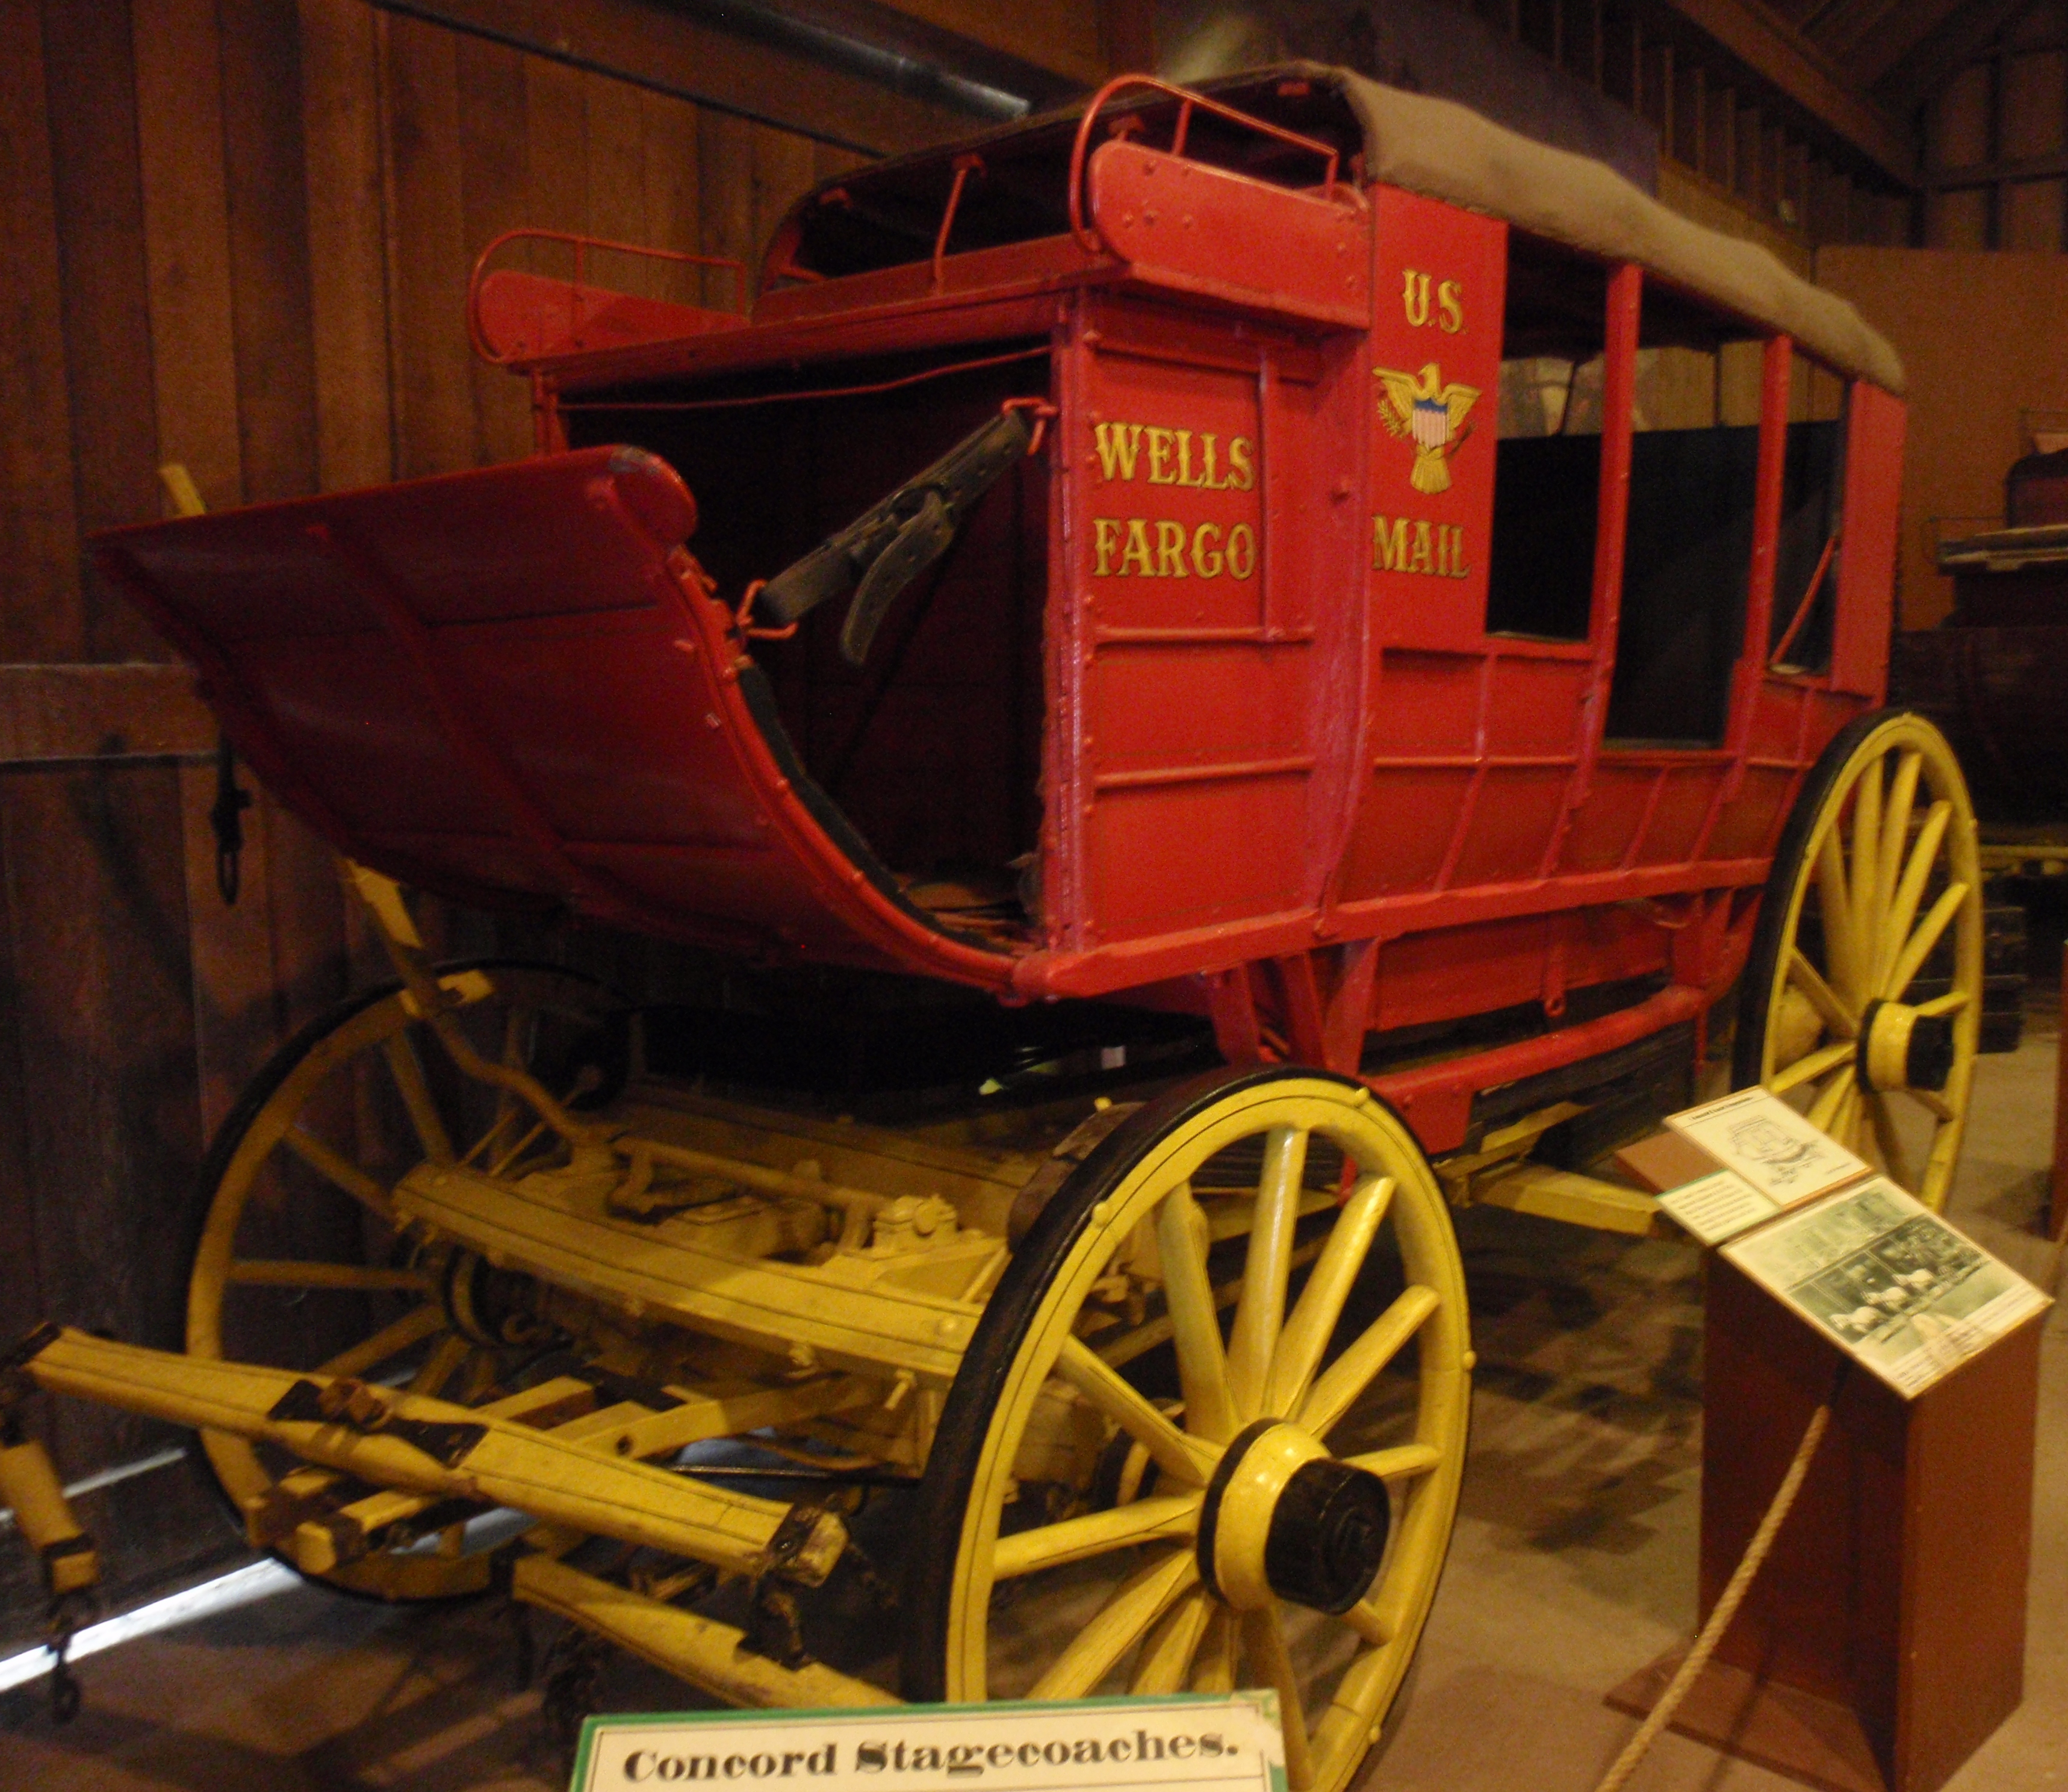 Wells Fargo 'mud wagon' at Seely Stable museum in San Diego' Old Town state park. Photo by James Ulvog.